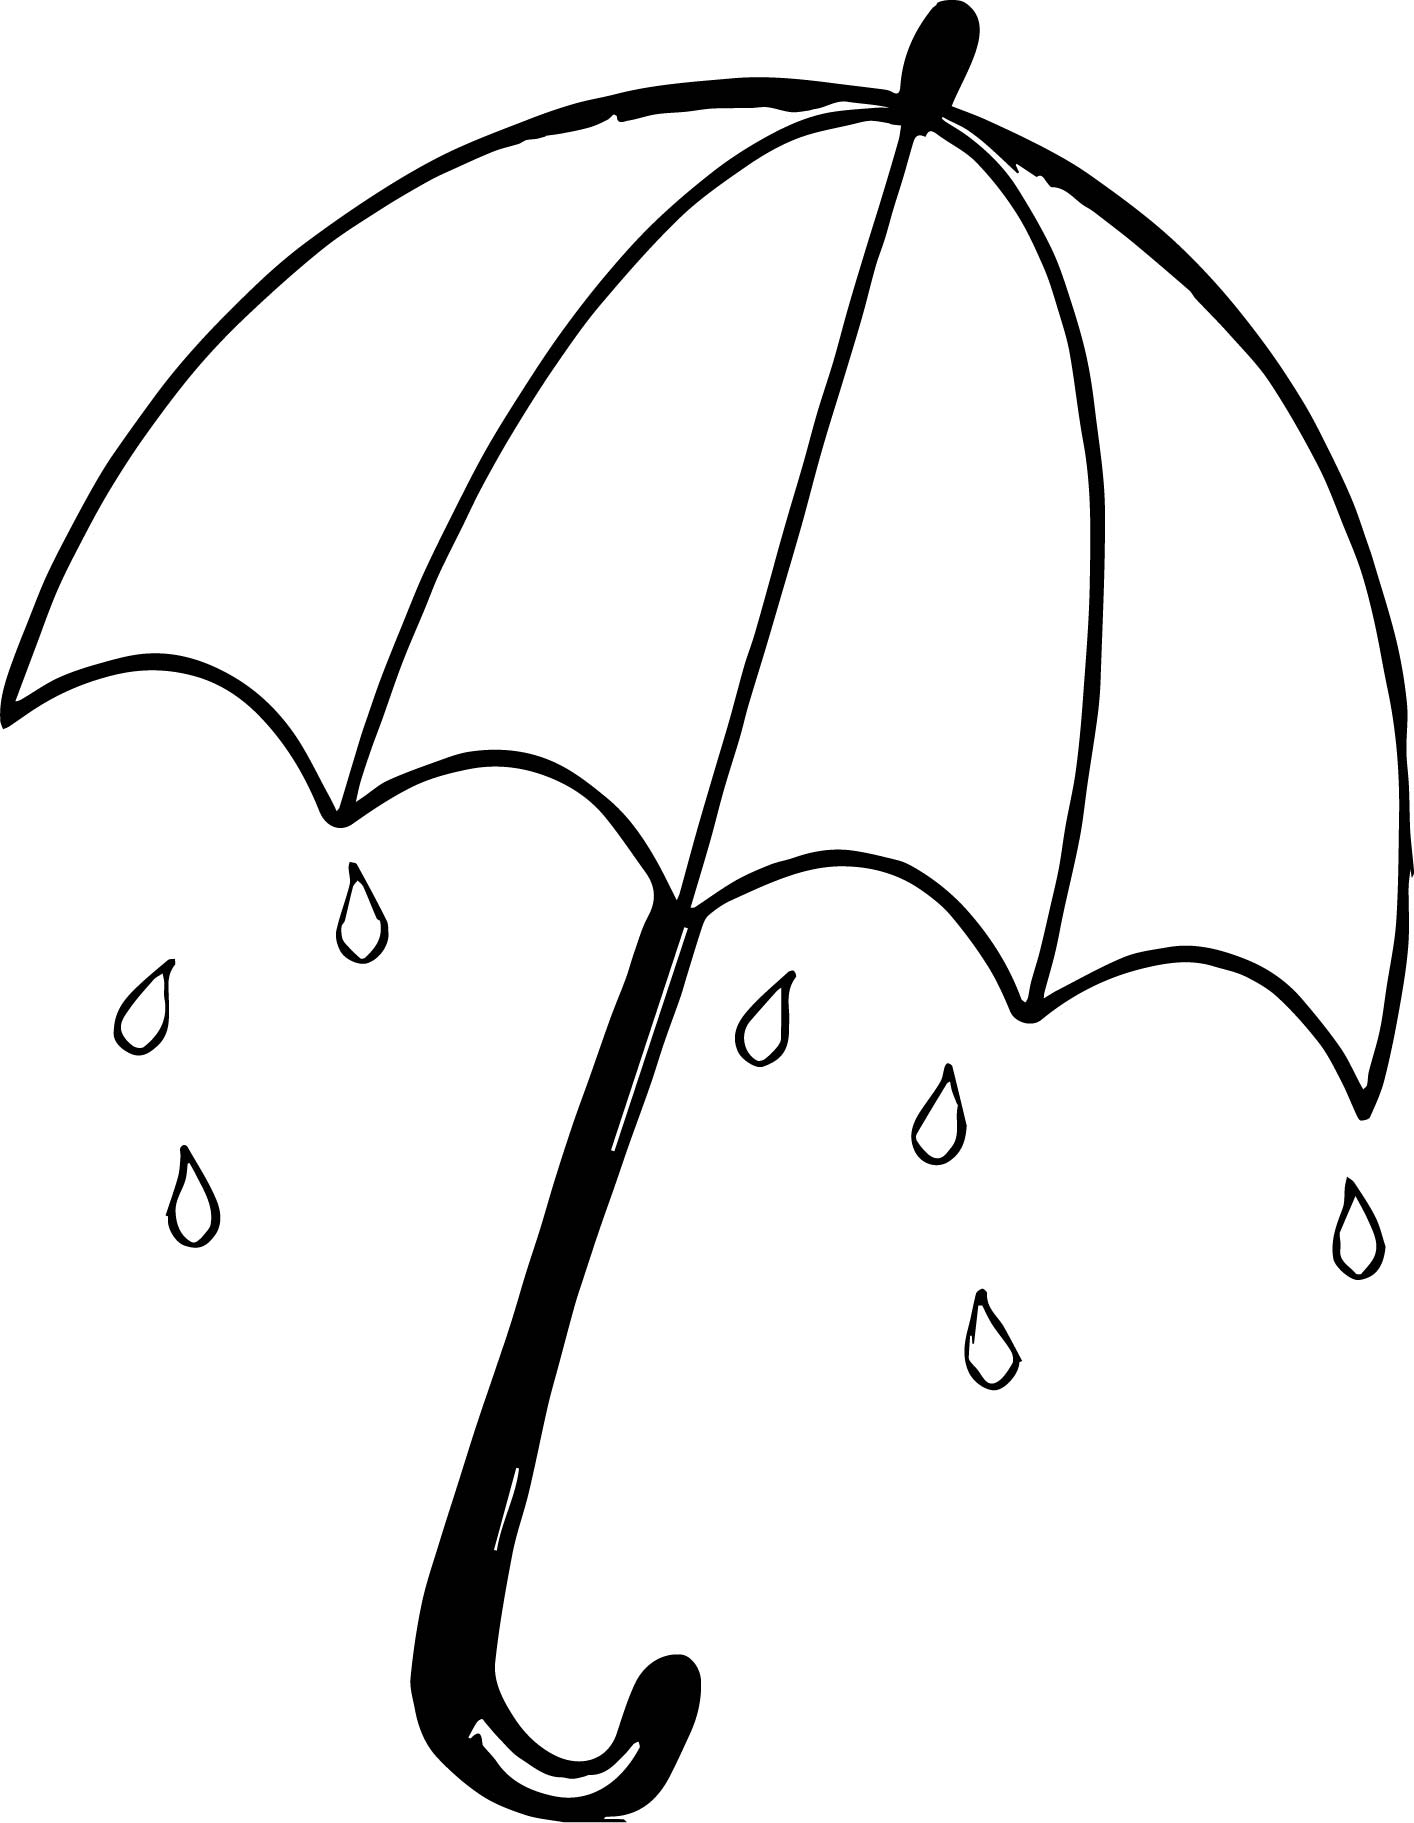 Line Drawing Umbrella : Umbrella drawing images at getdrawings free for